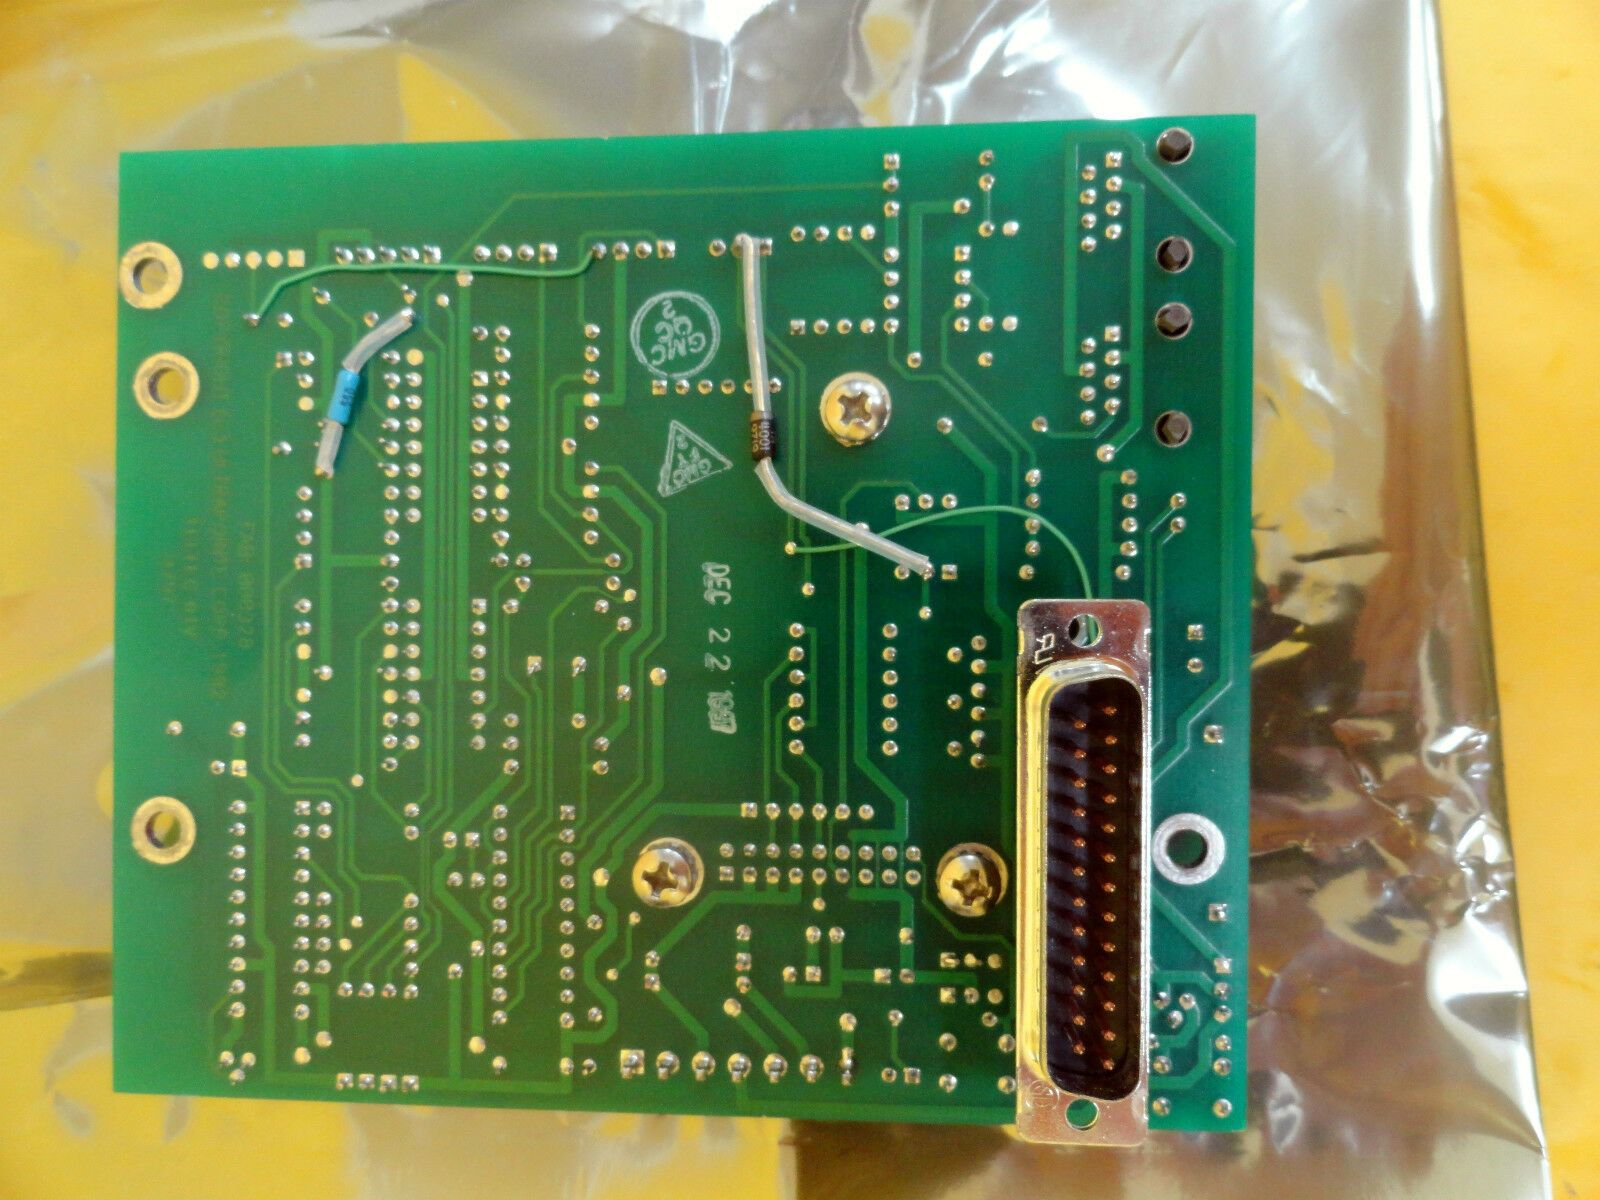 Ultrapointe 000327 Laser Power Controller PCB Used Working